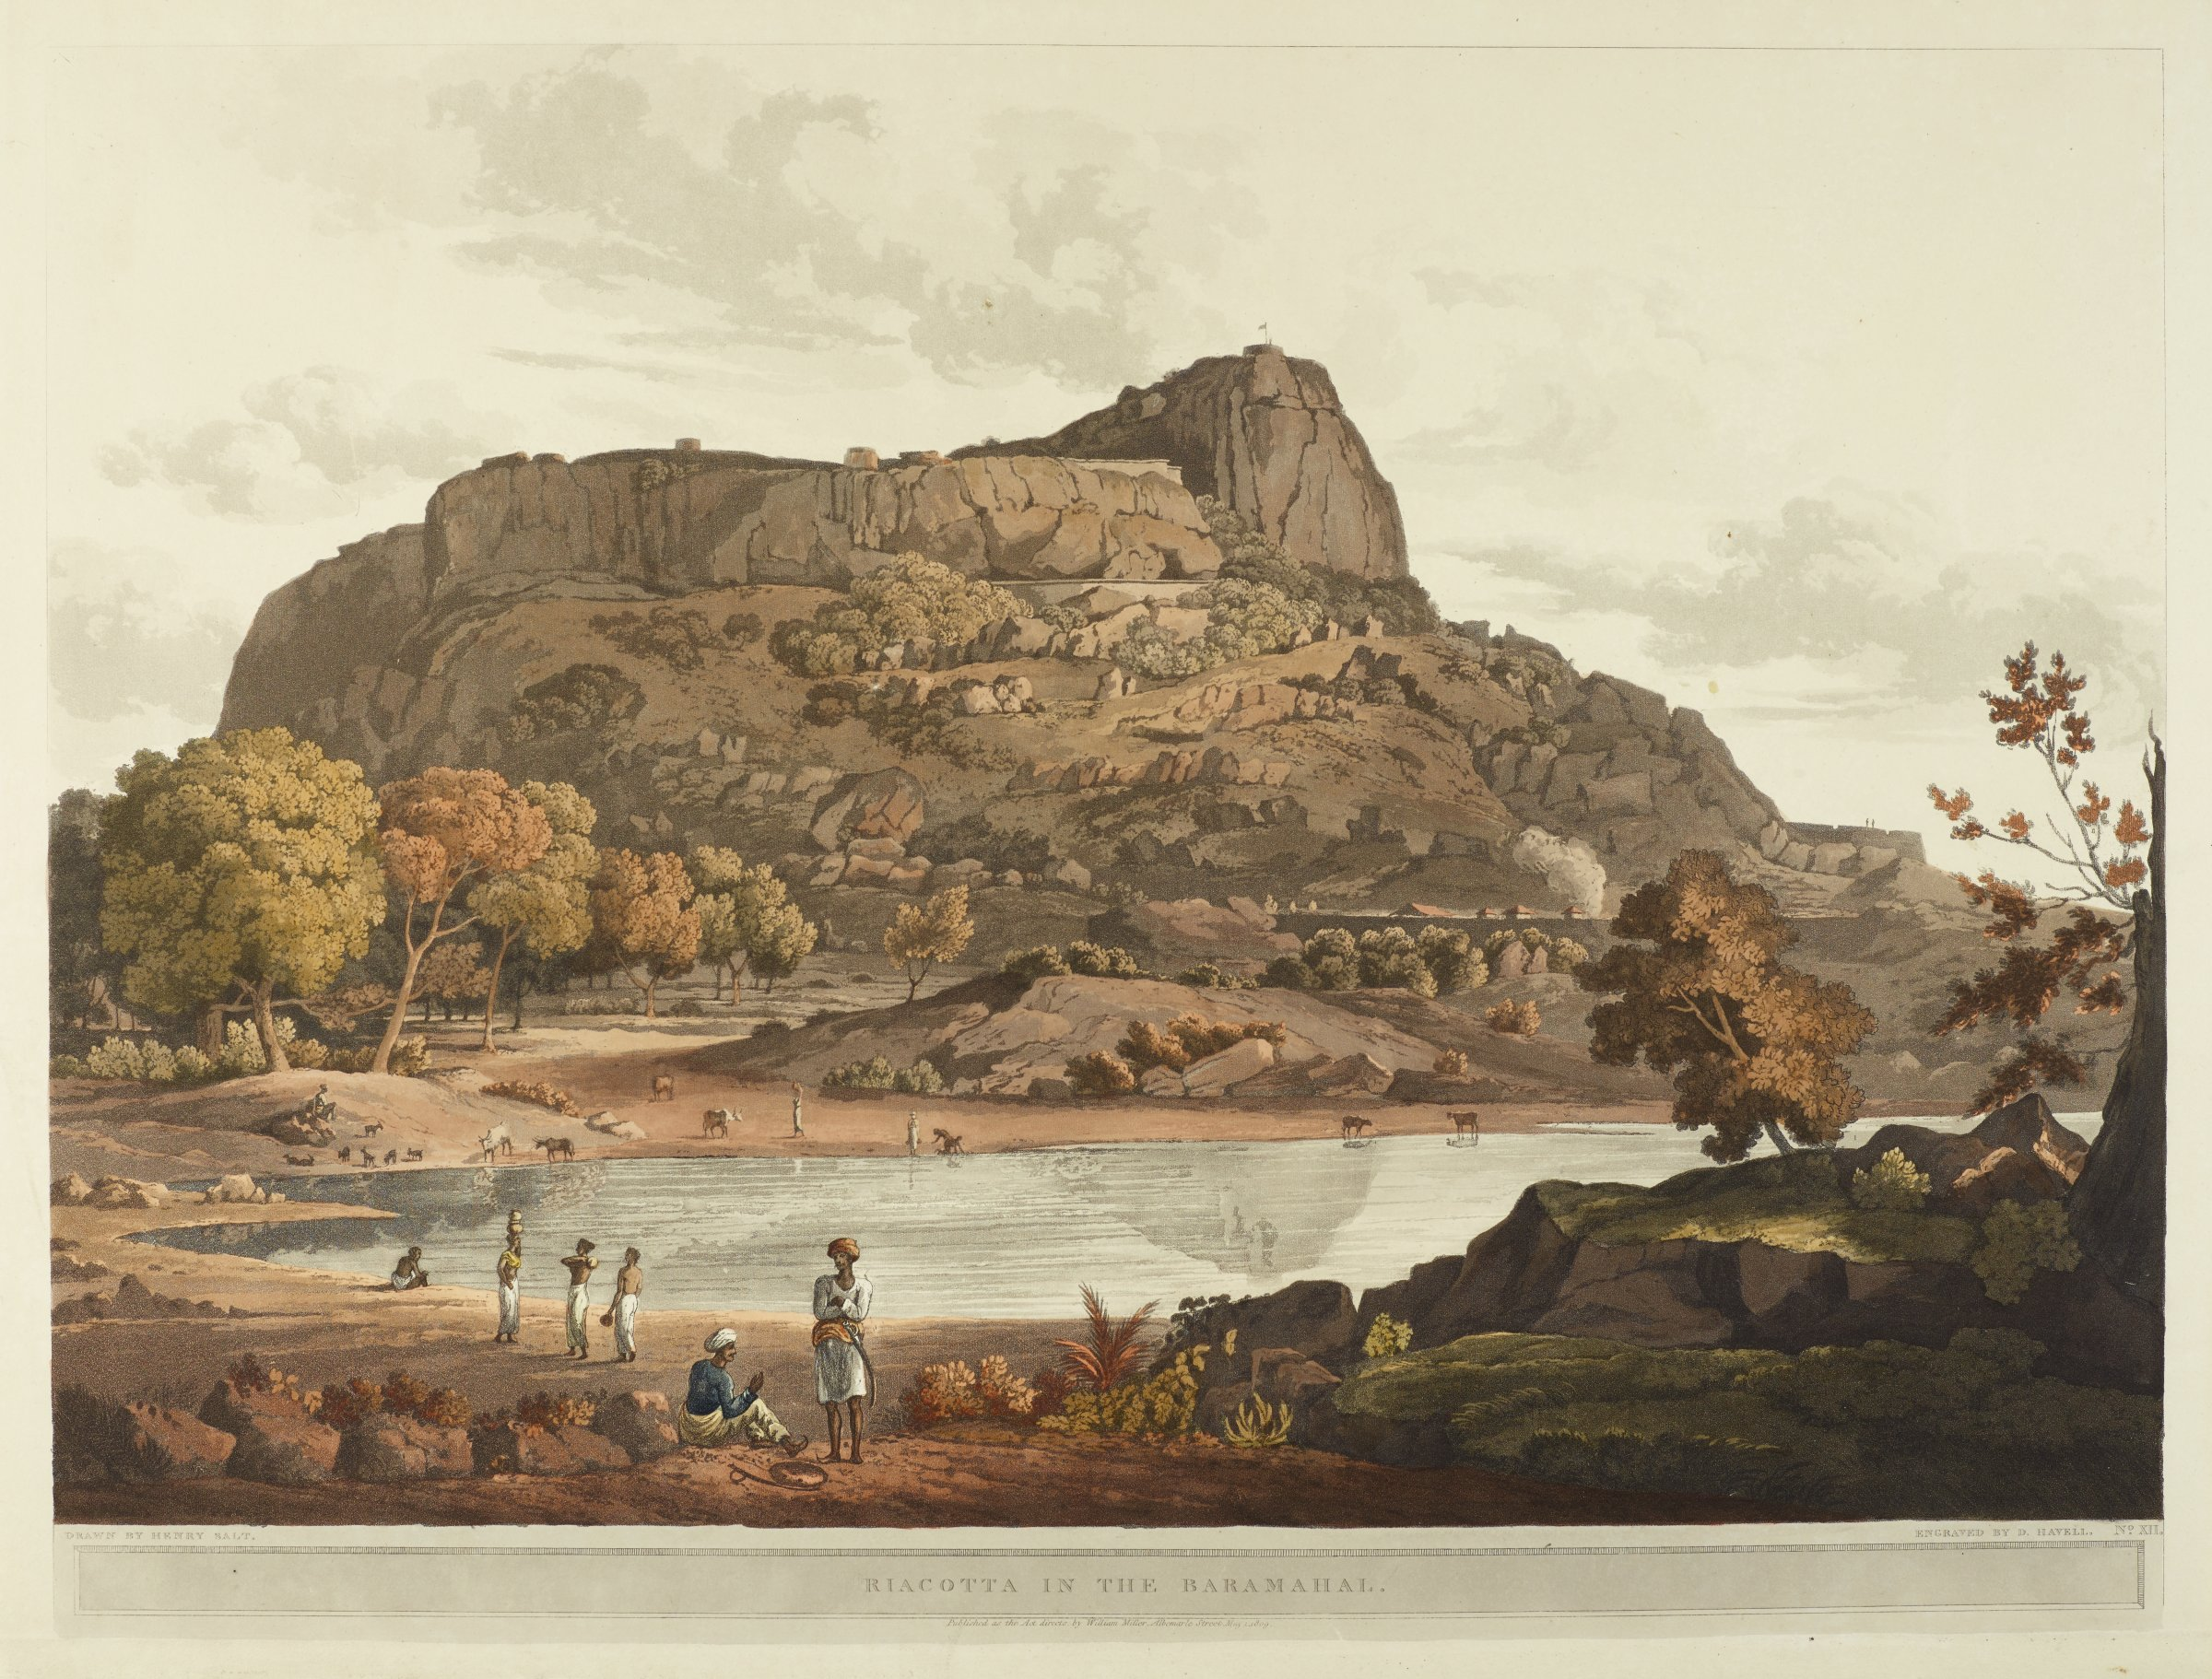 A landscape scene with figures is shown. A body of water populates the middleground, and a rocky hill sits in the background.